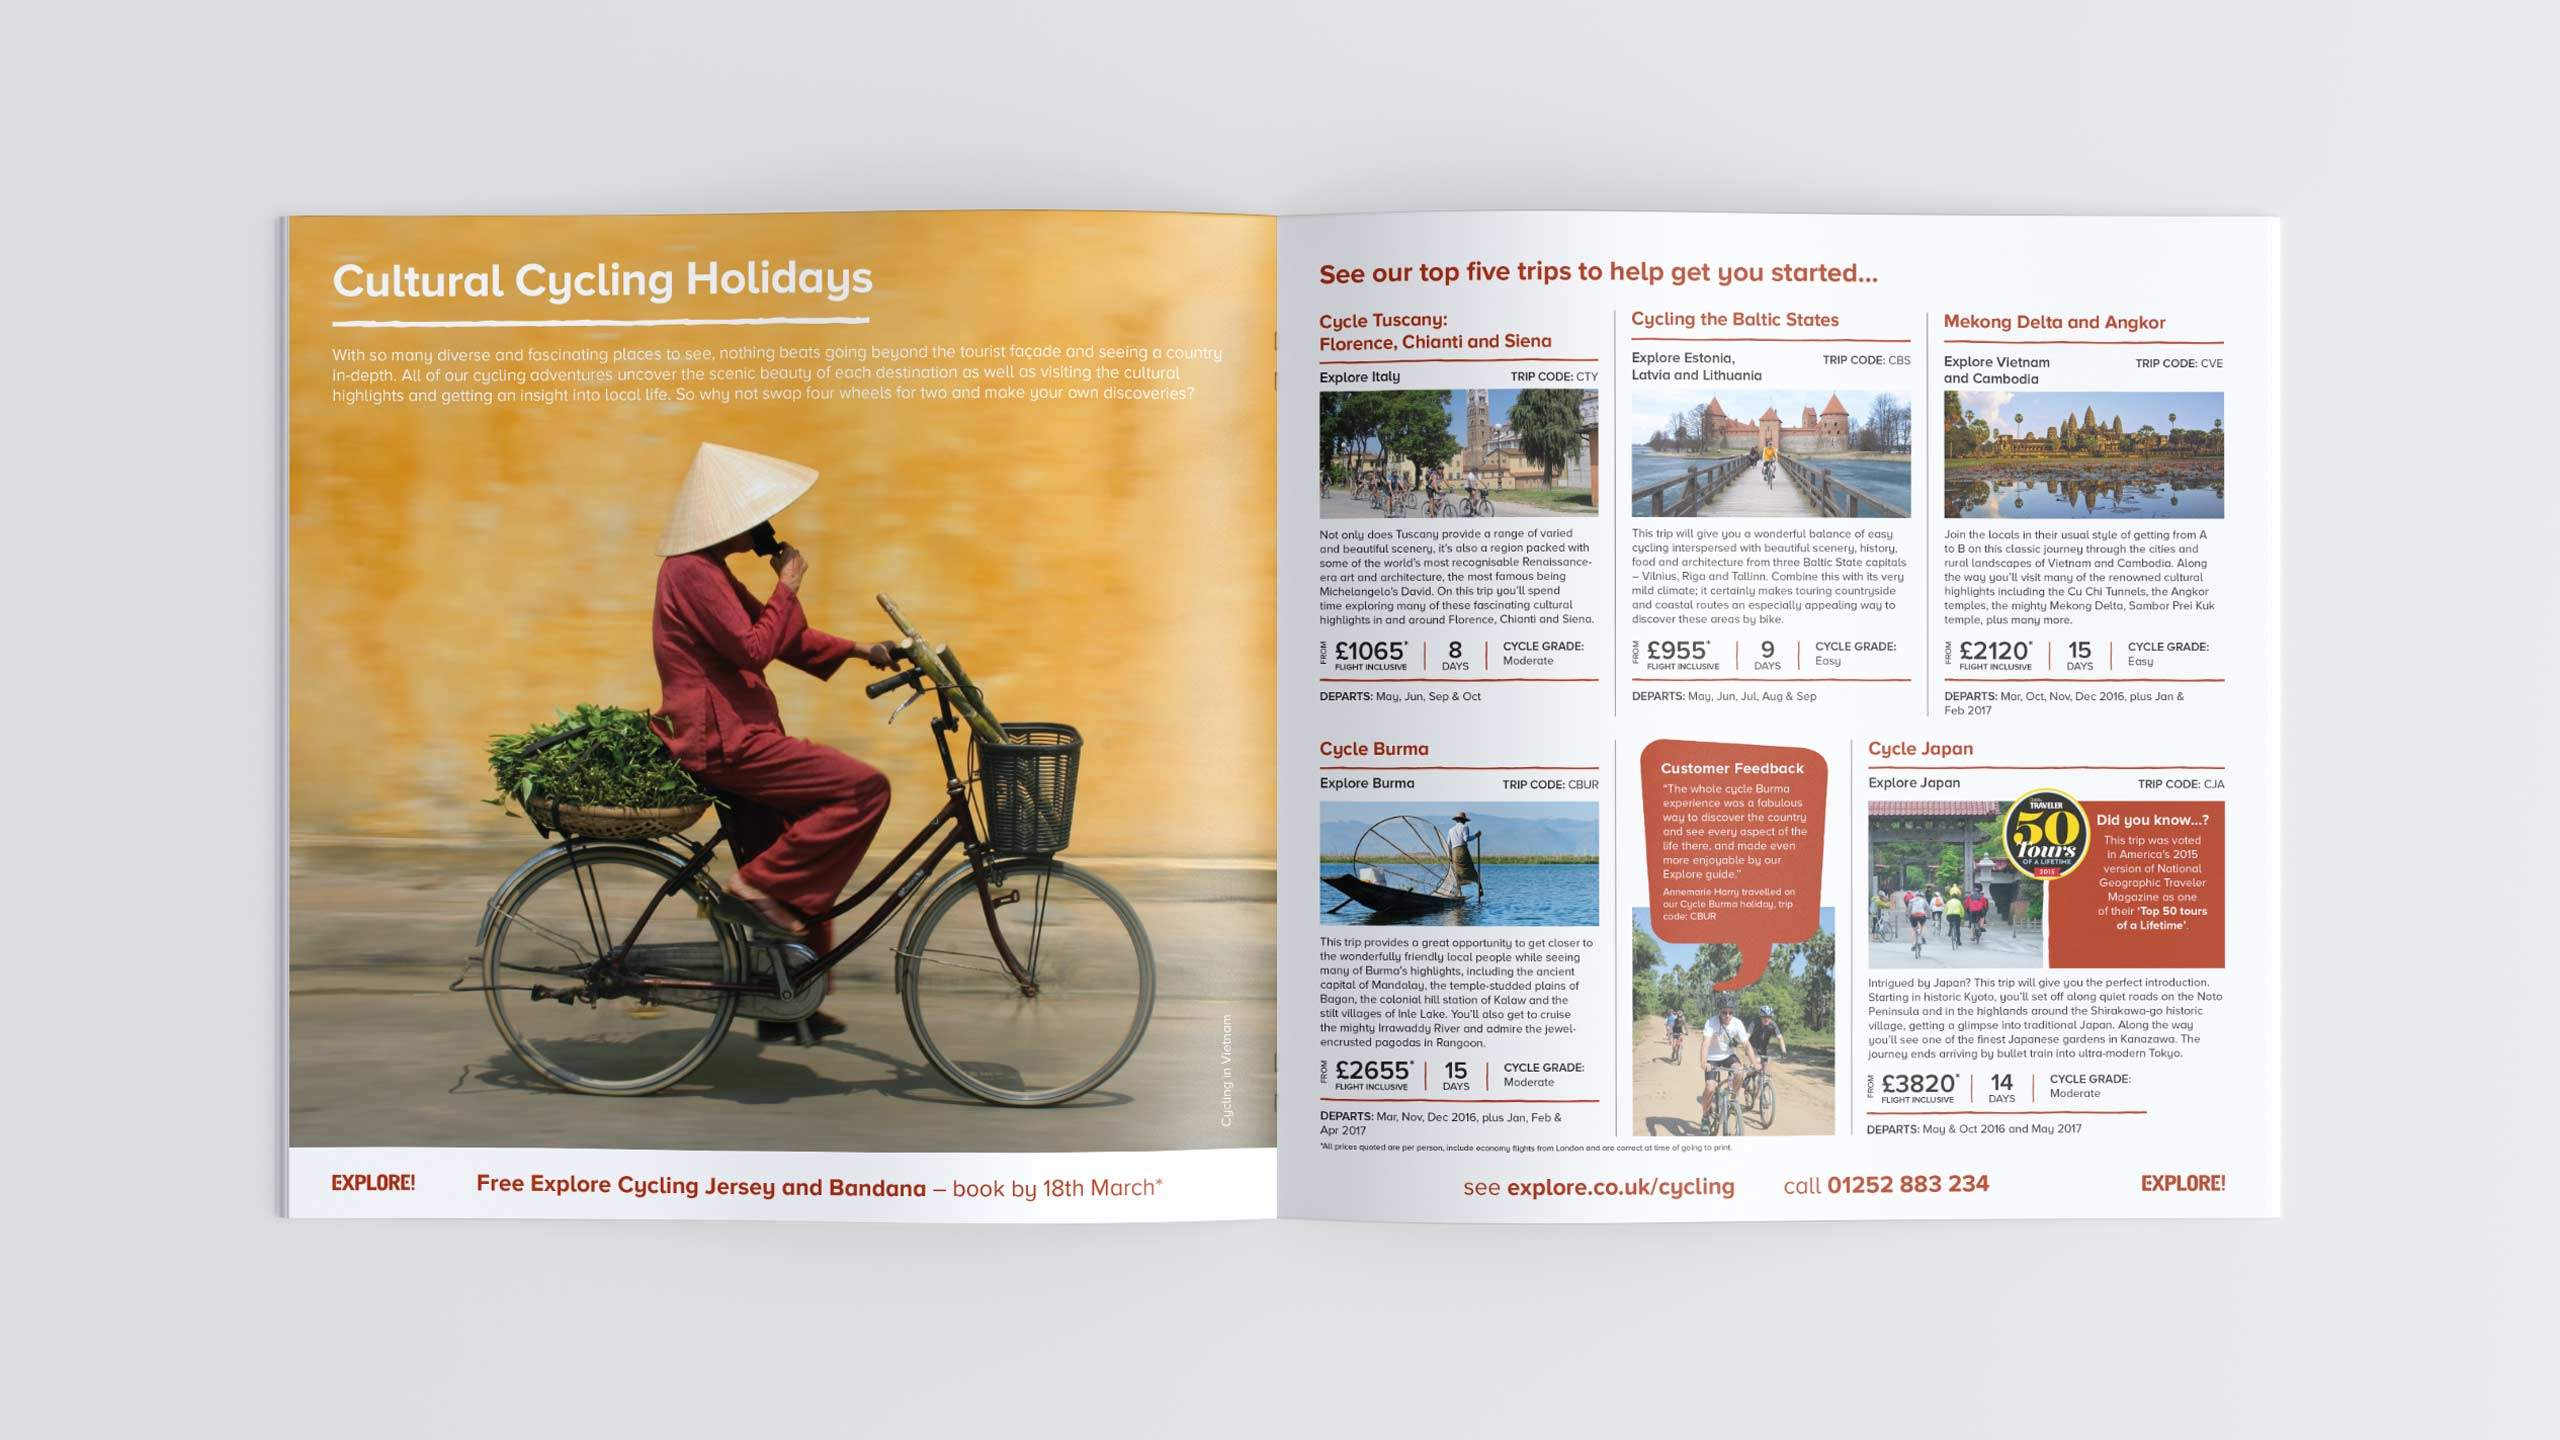 adventure travel brochure design refresh cultural cycling holidays pages cycling direct marketing